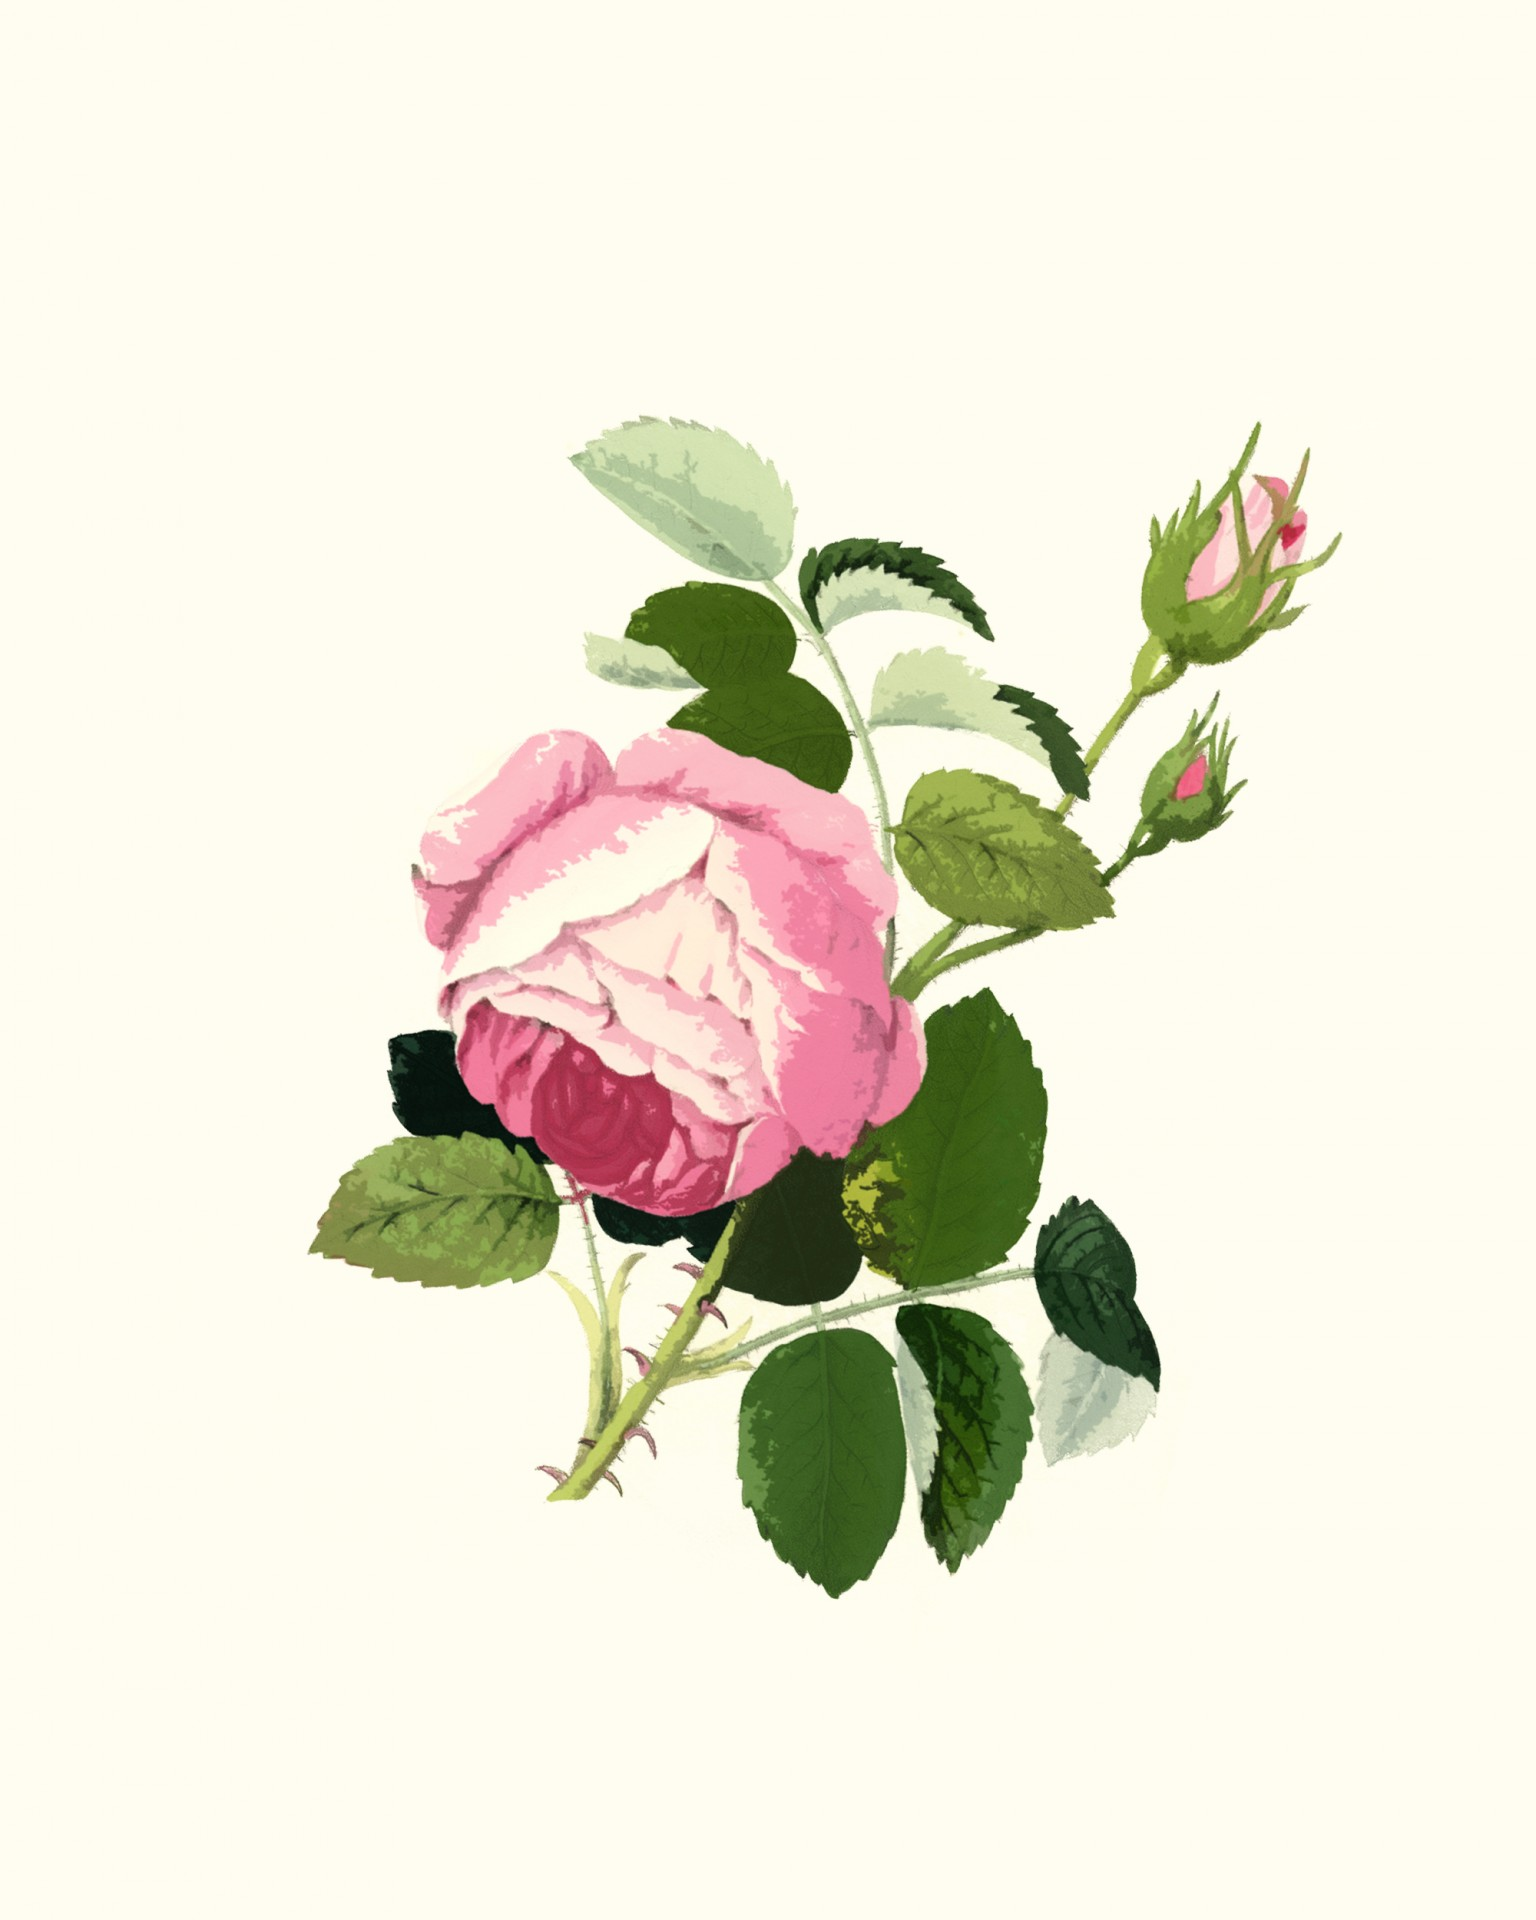 Rose clipart pink rose. Free stock photo public